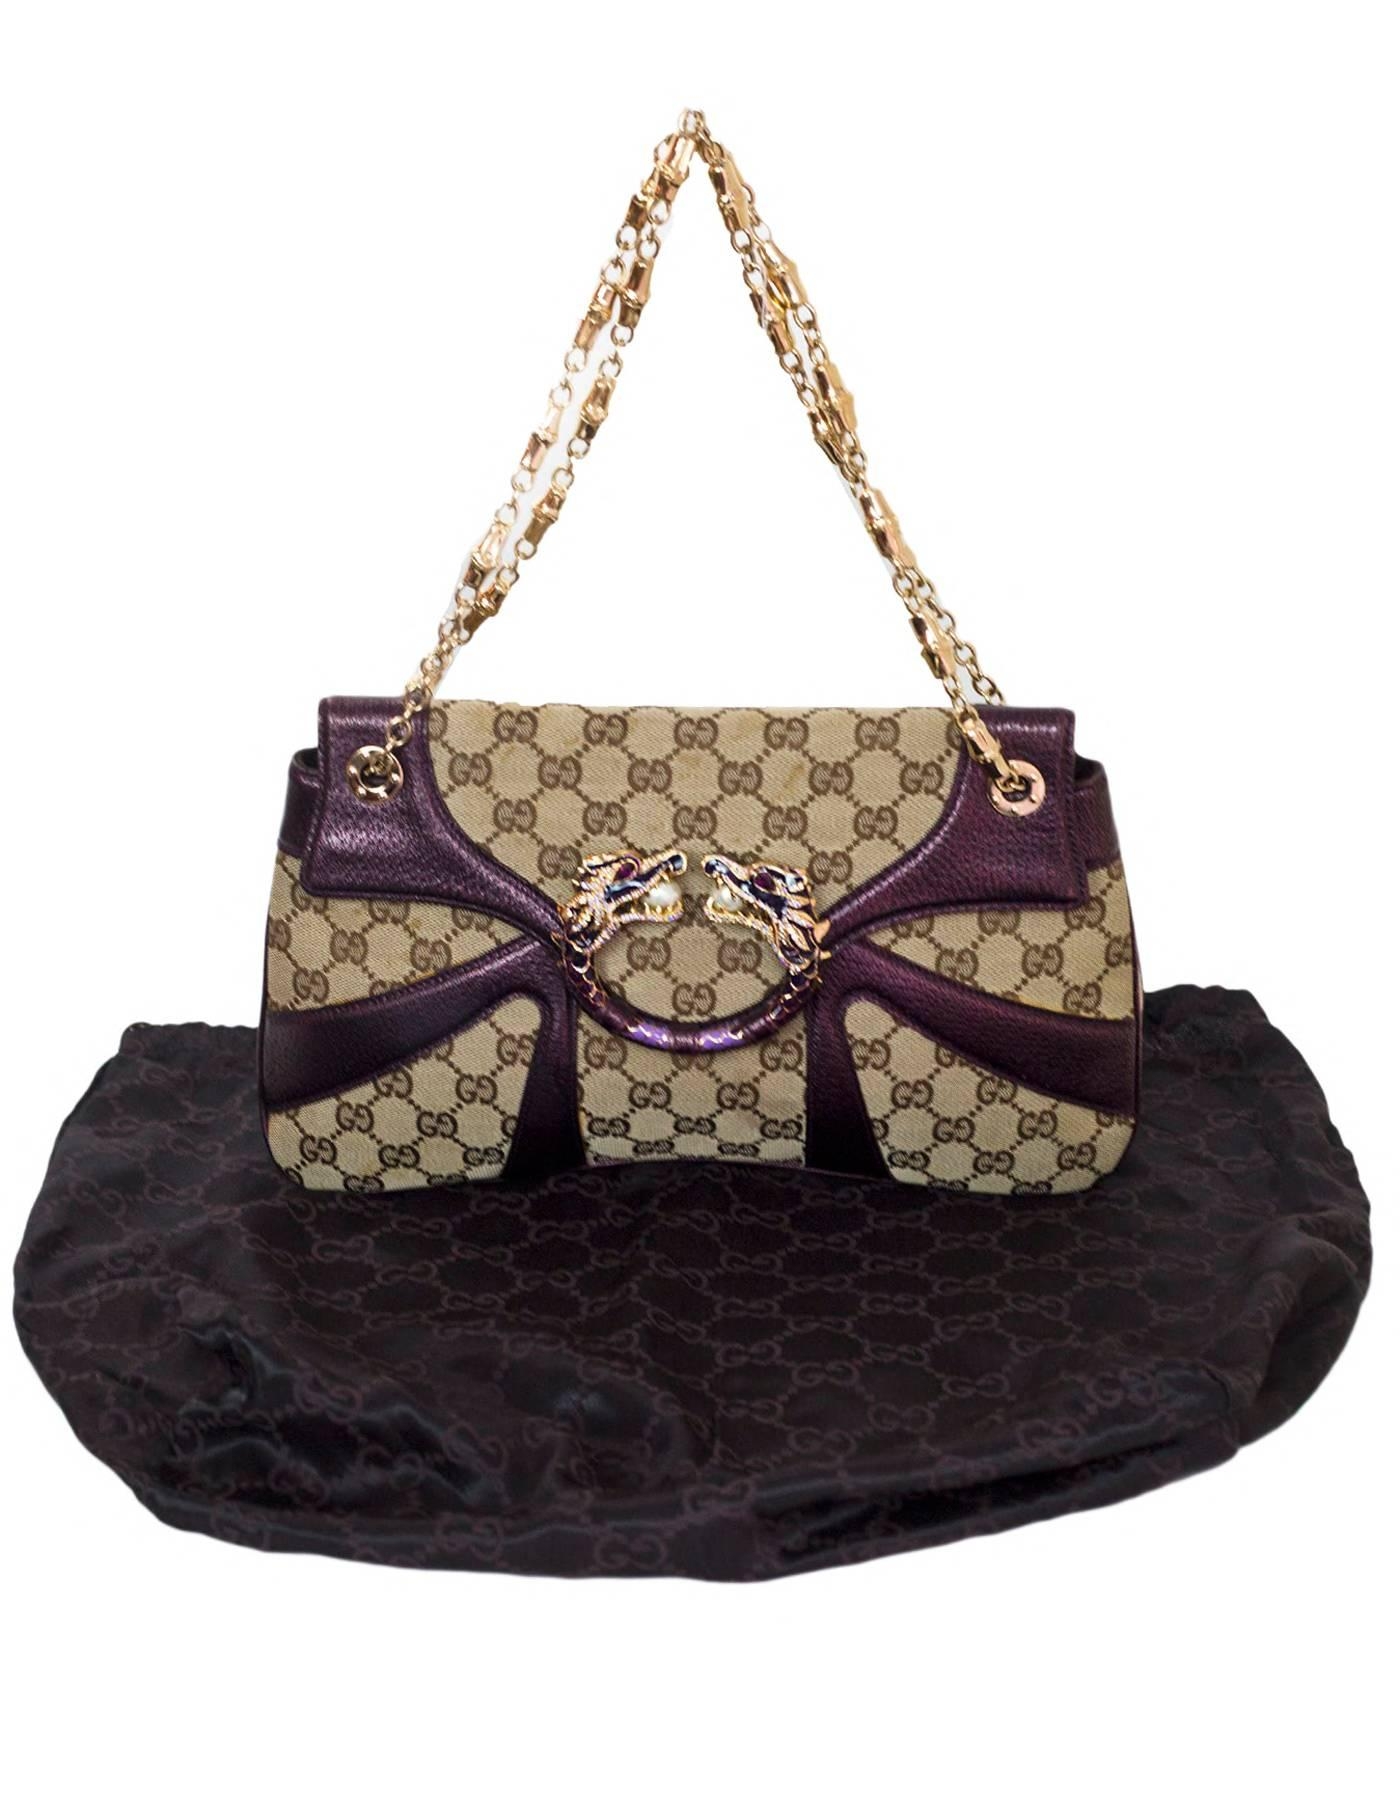 9be3f0f1cd7 Gucci Beige GG Canvas and Purple Leather Tom Ford Dragon Shoulder Bag w. Dust  Bag For Sale at 1stdibs